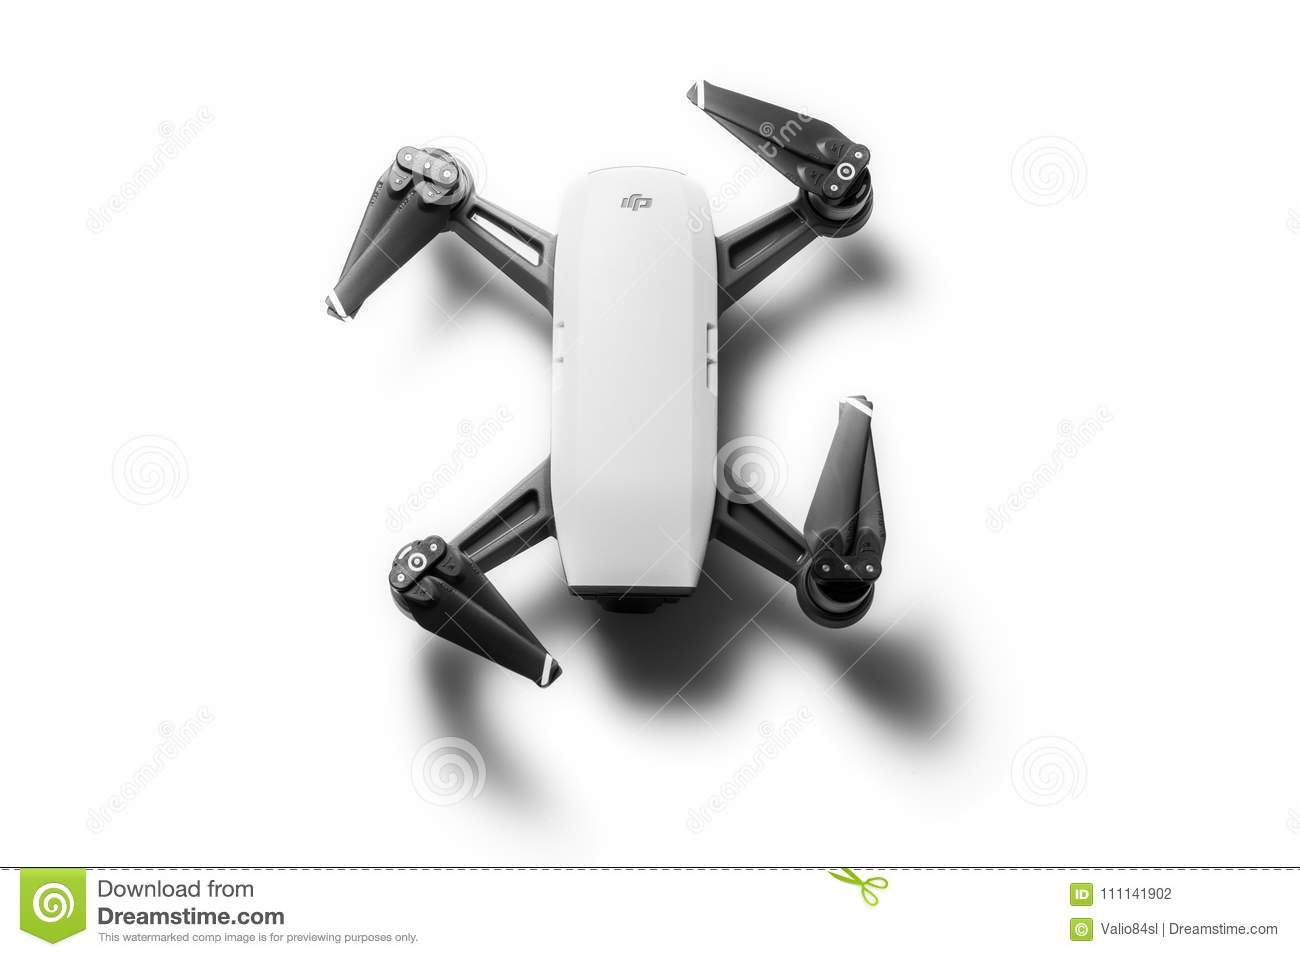 Dji Spark Drone Mini Quadcopter Isolated On White Editorial